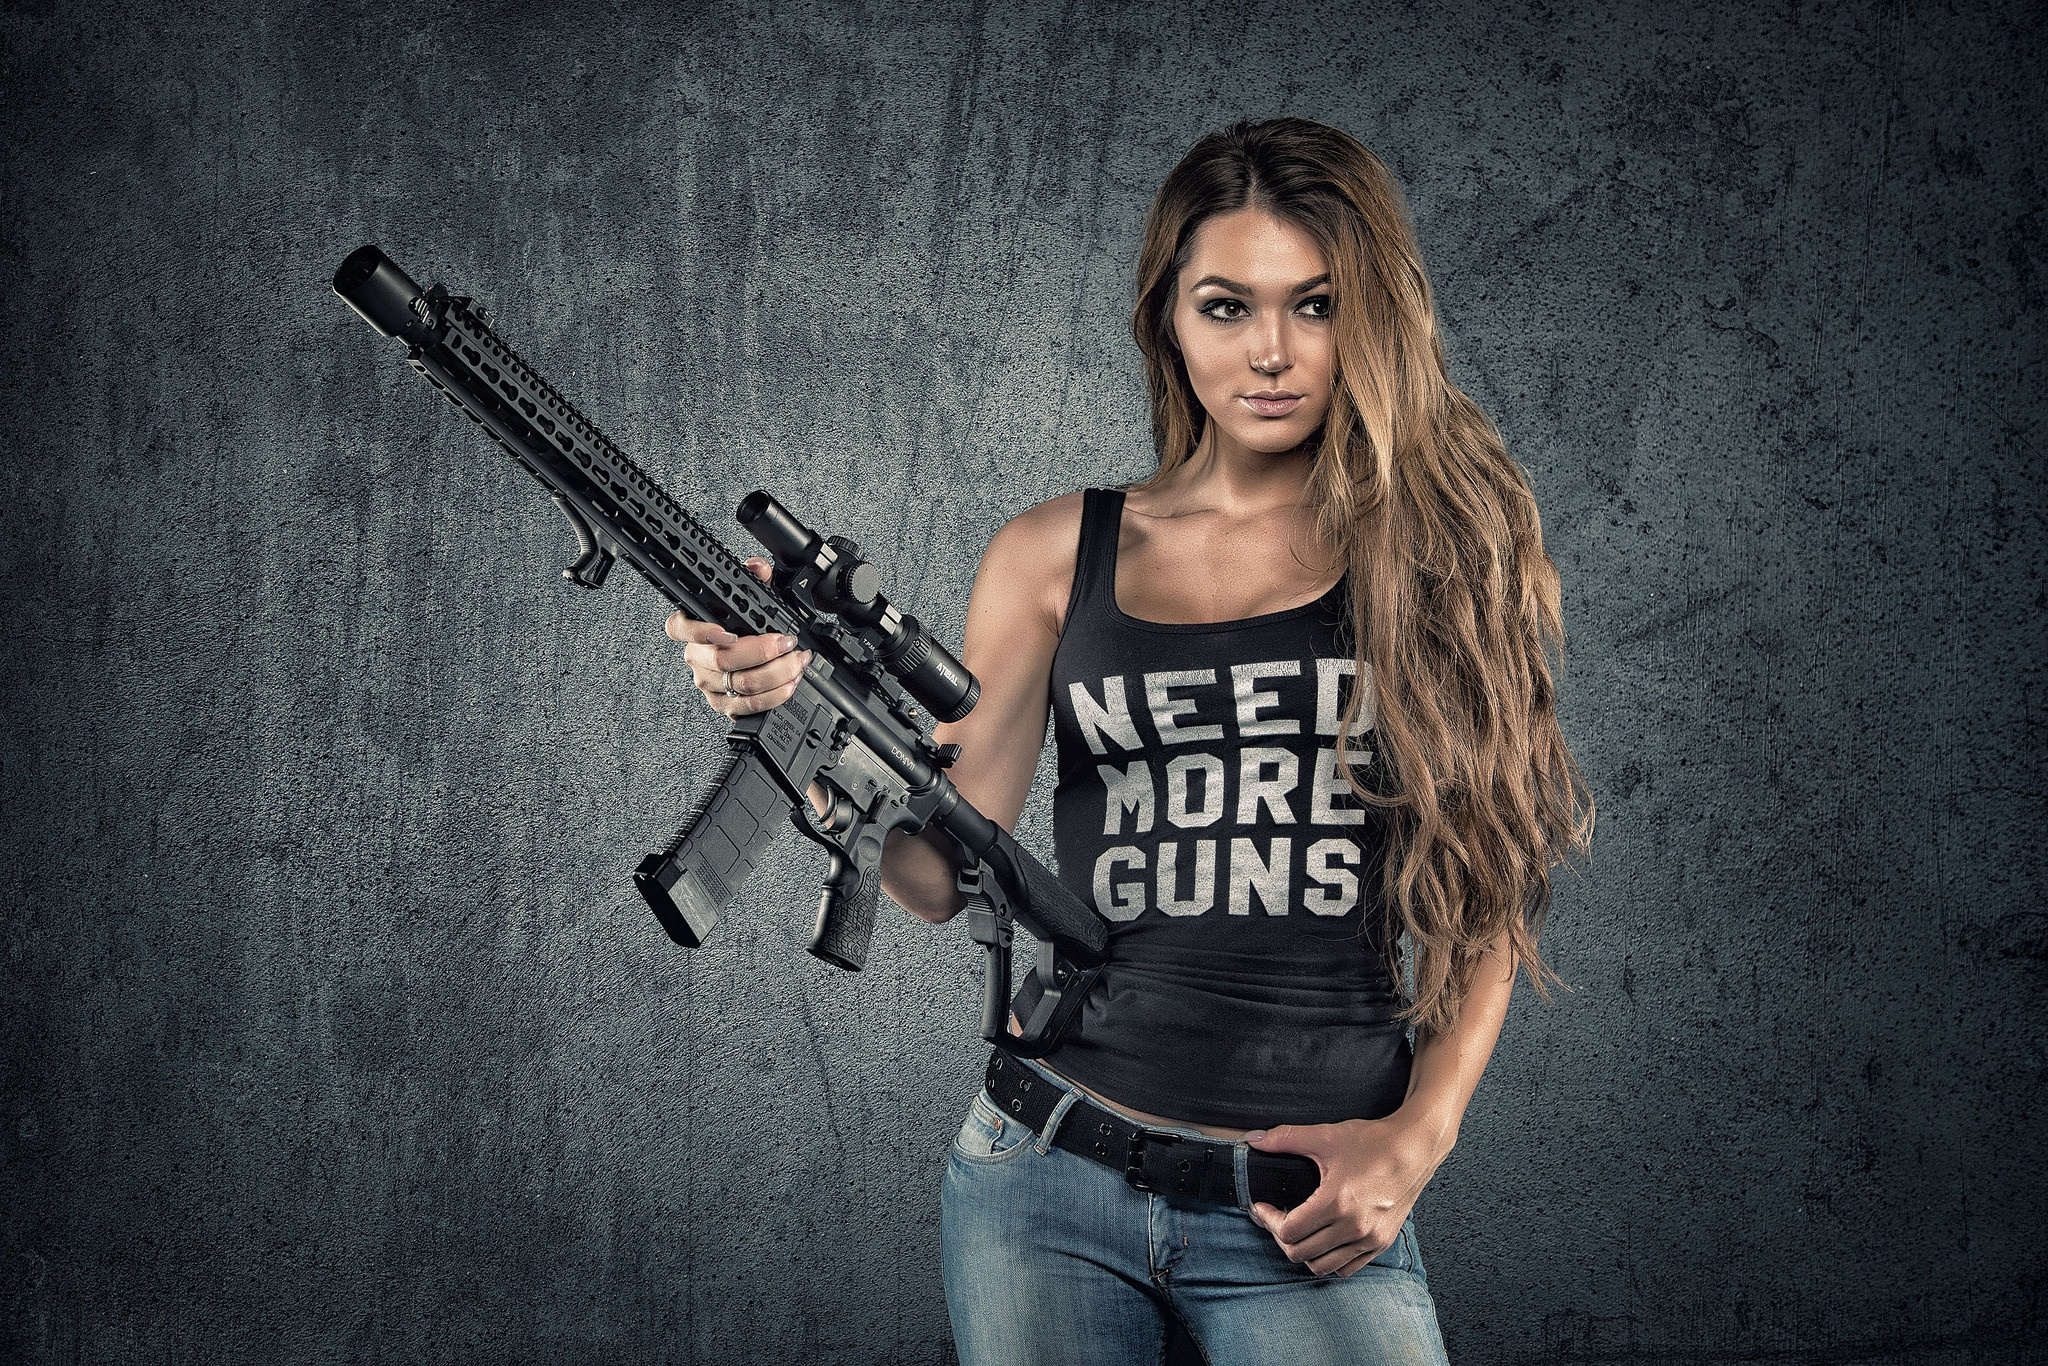 pictures-of-girls-shooting-guns-open-pussy-pose